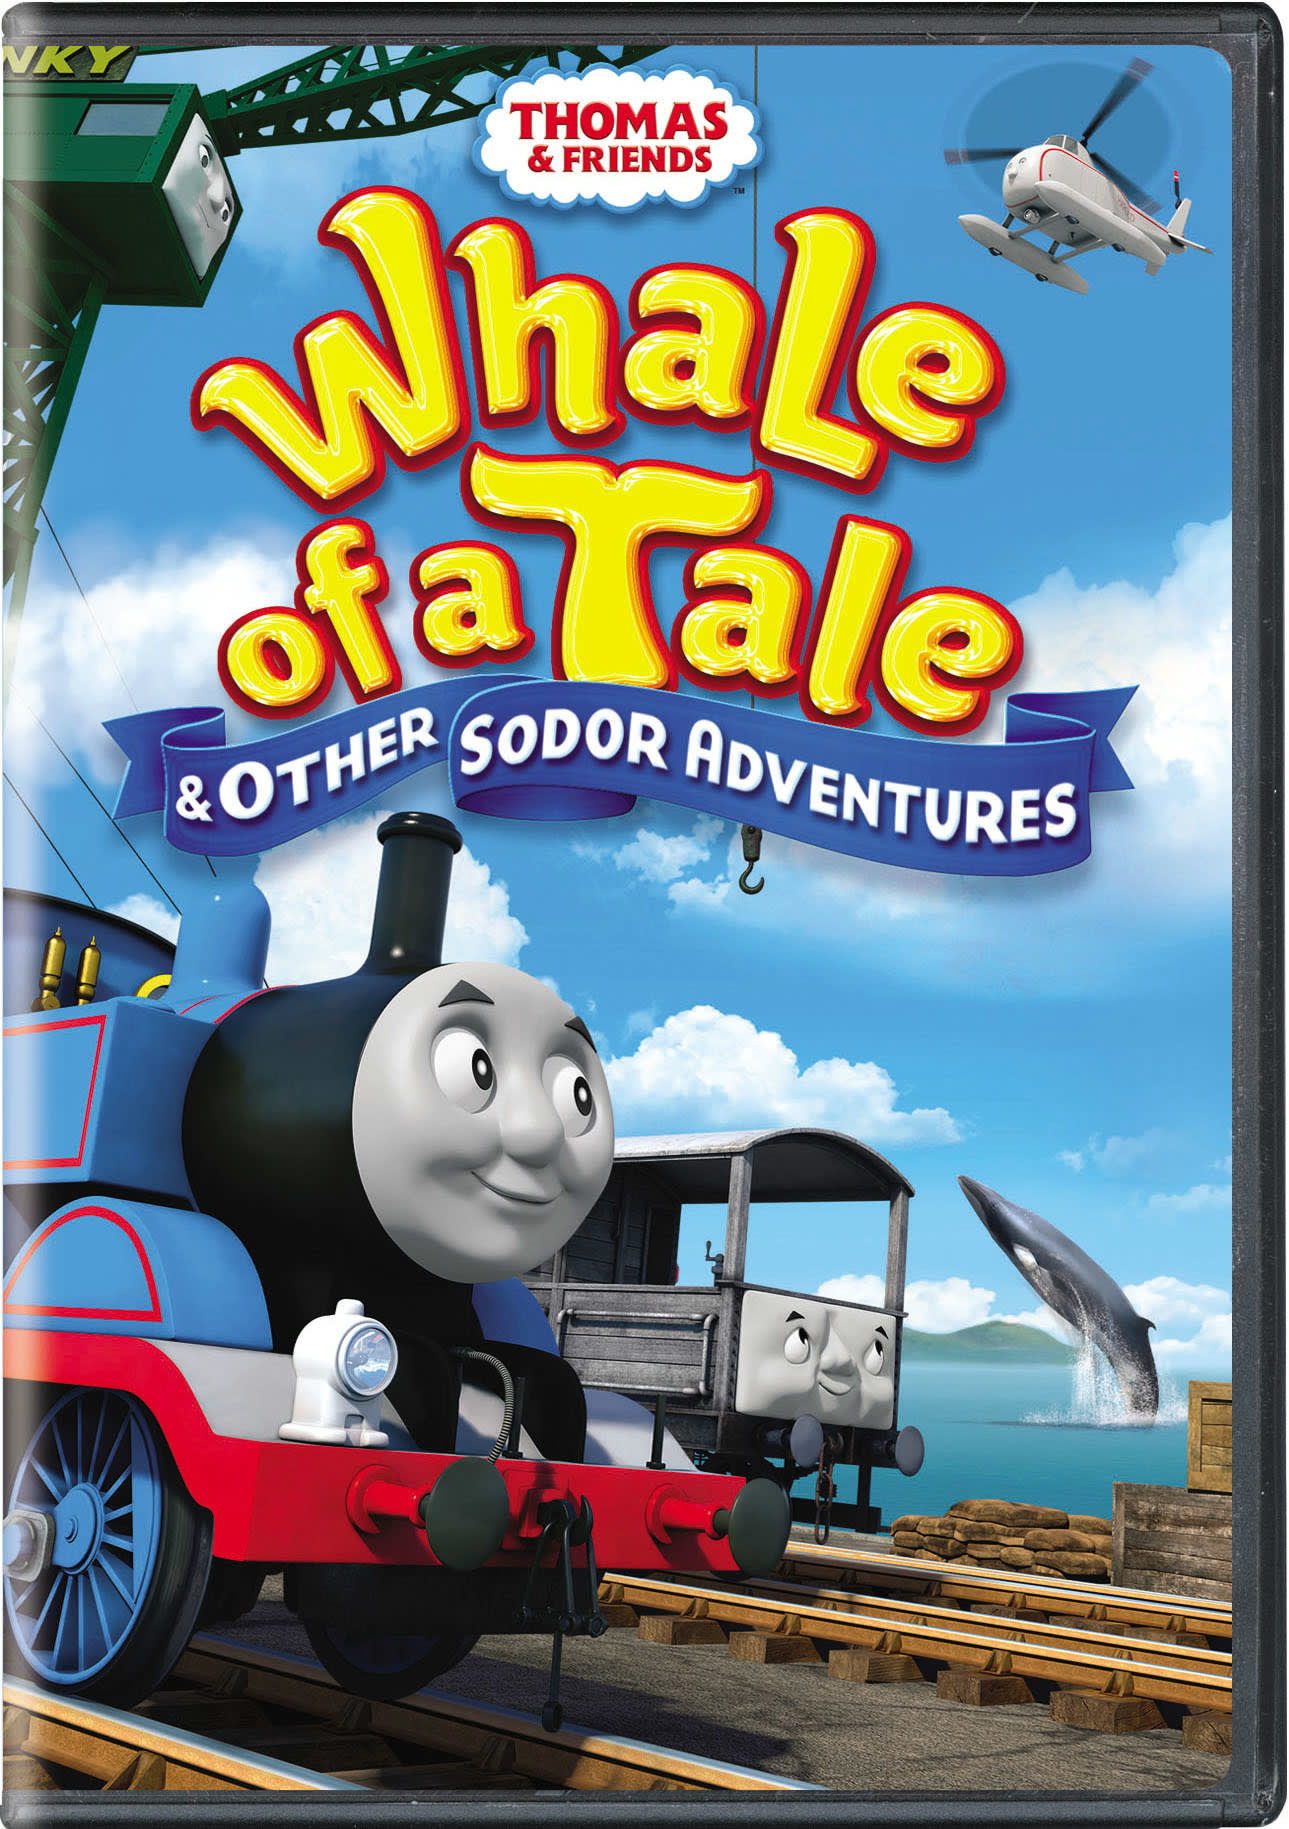 Thomas & Friends: Whale of a Tale & Other Sodor Adventures [DVD]